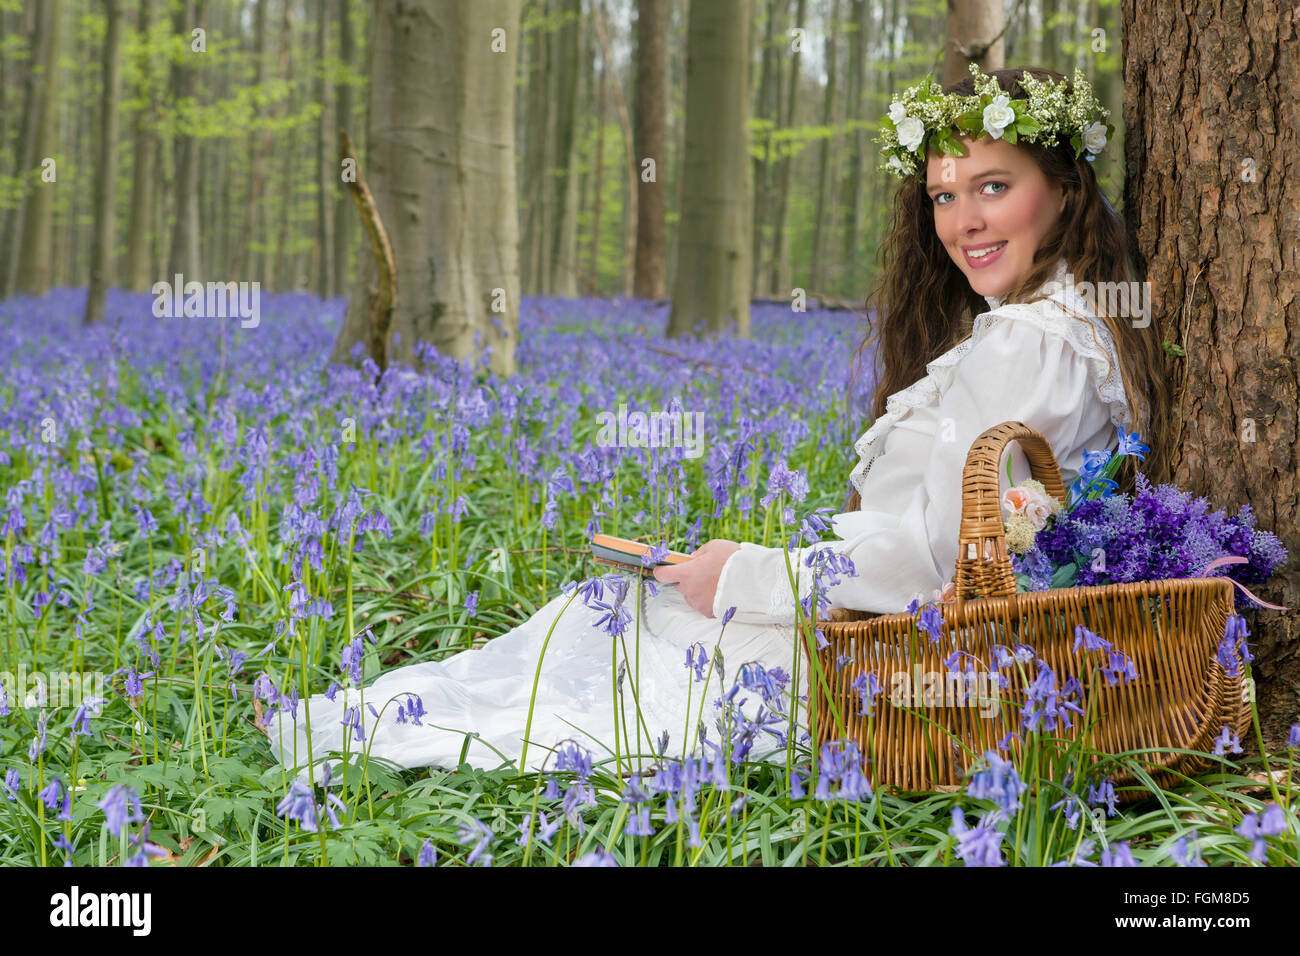 Victorian woman in white dress in a springtime bluebells forest - Stock Image